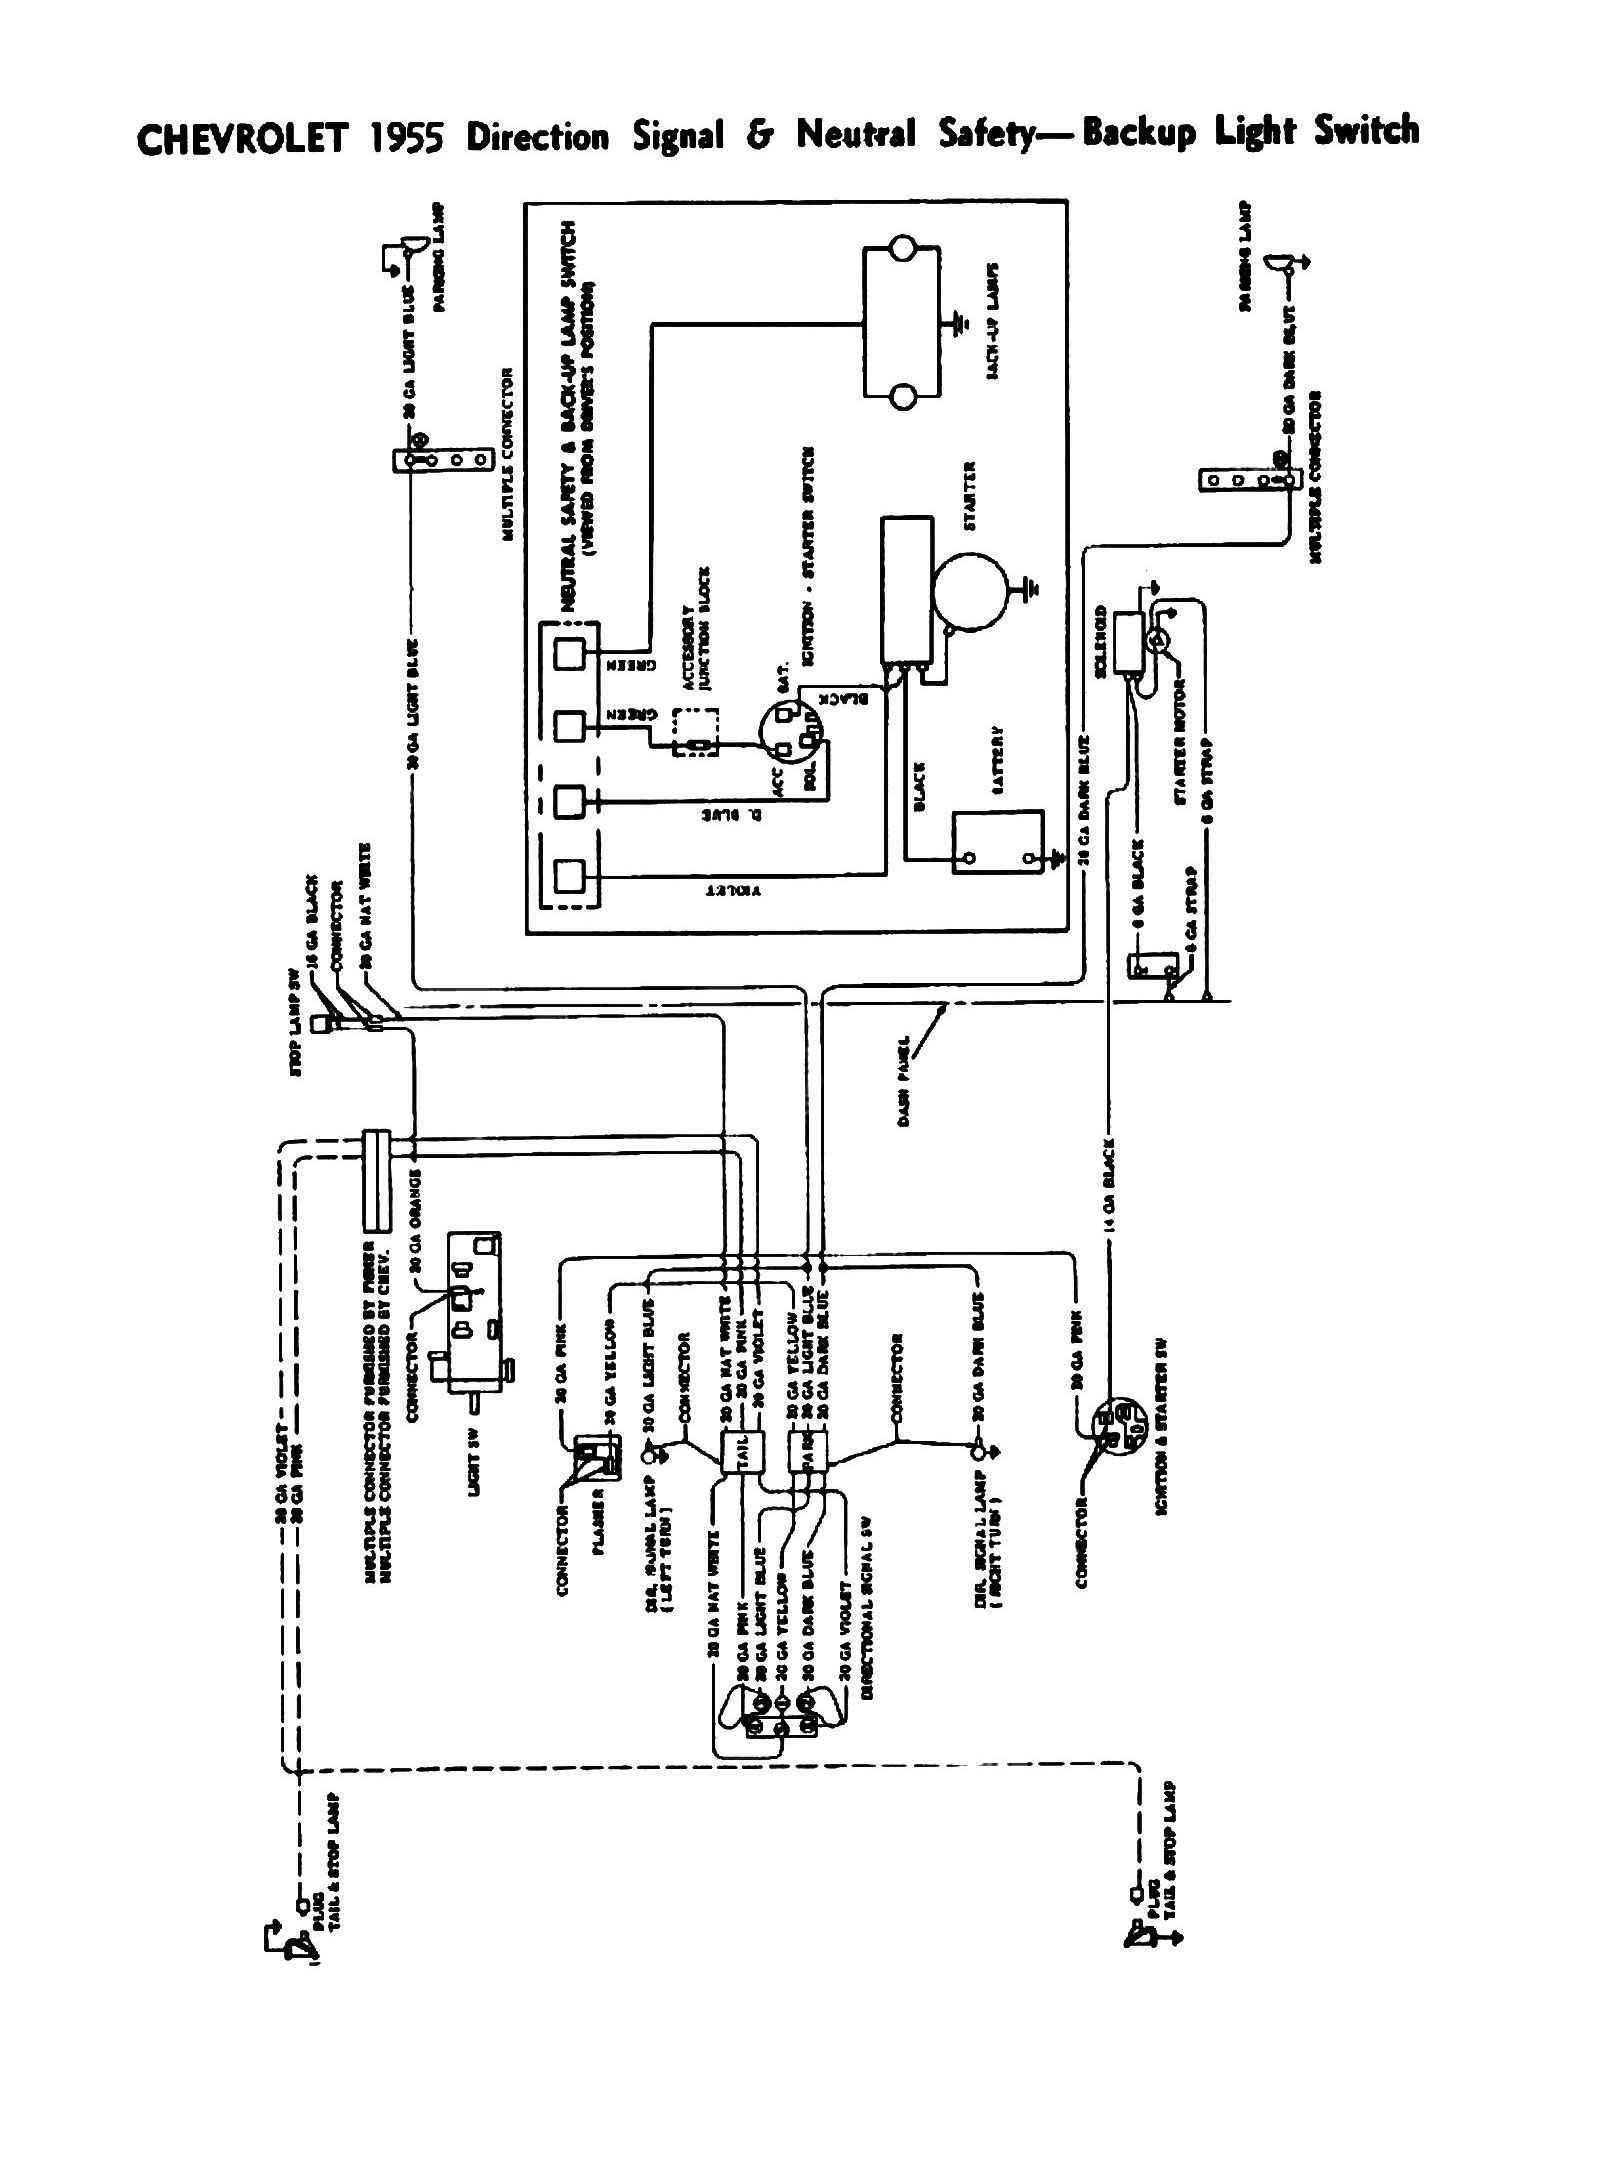 1957 chevy engine diagram data wiring diagrams rh 17 sdfvc treatymonitoring de 235 chevy engine wiring diagram 1953 chevy 235 engine diagram